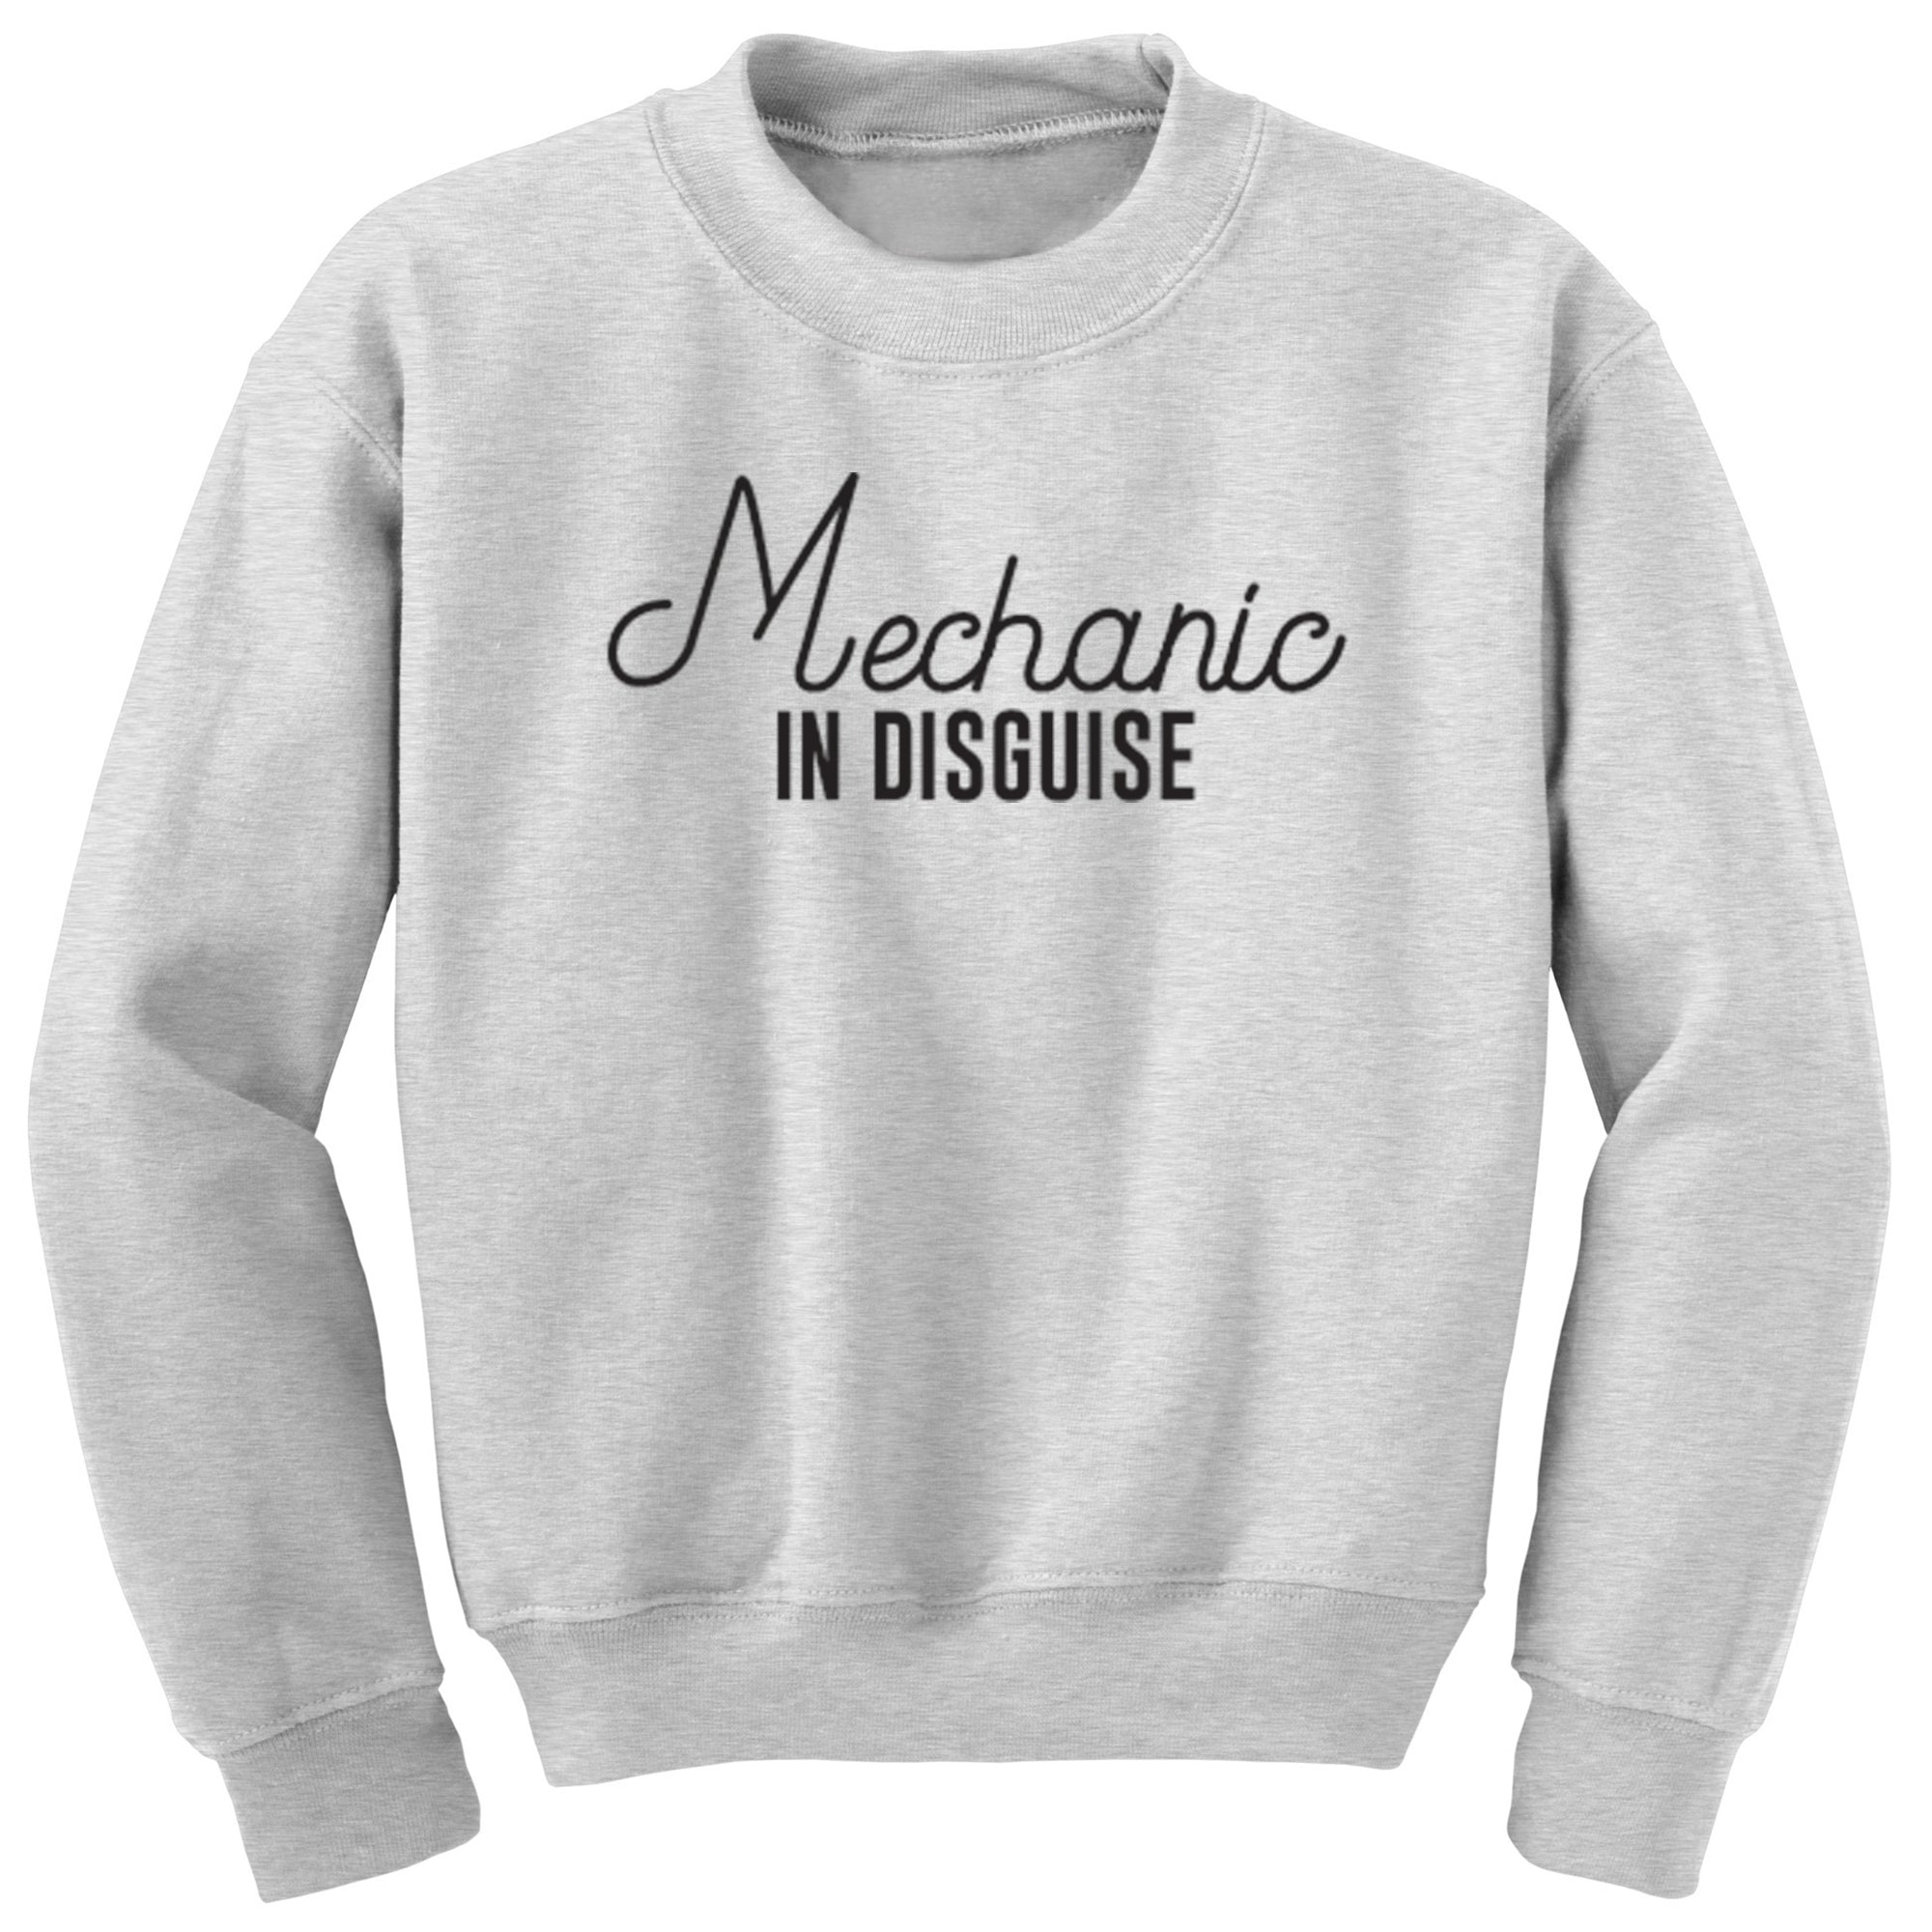 Mechanic In Disguise Unisex Jumper S0062 - Illustrated Identity Ltd.